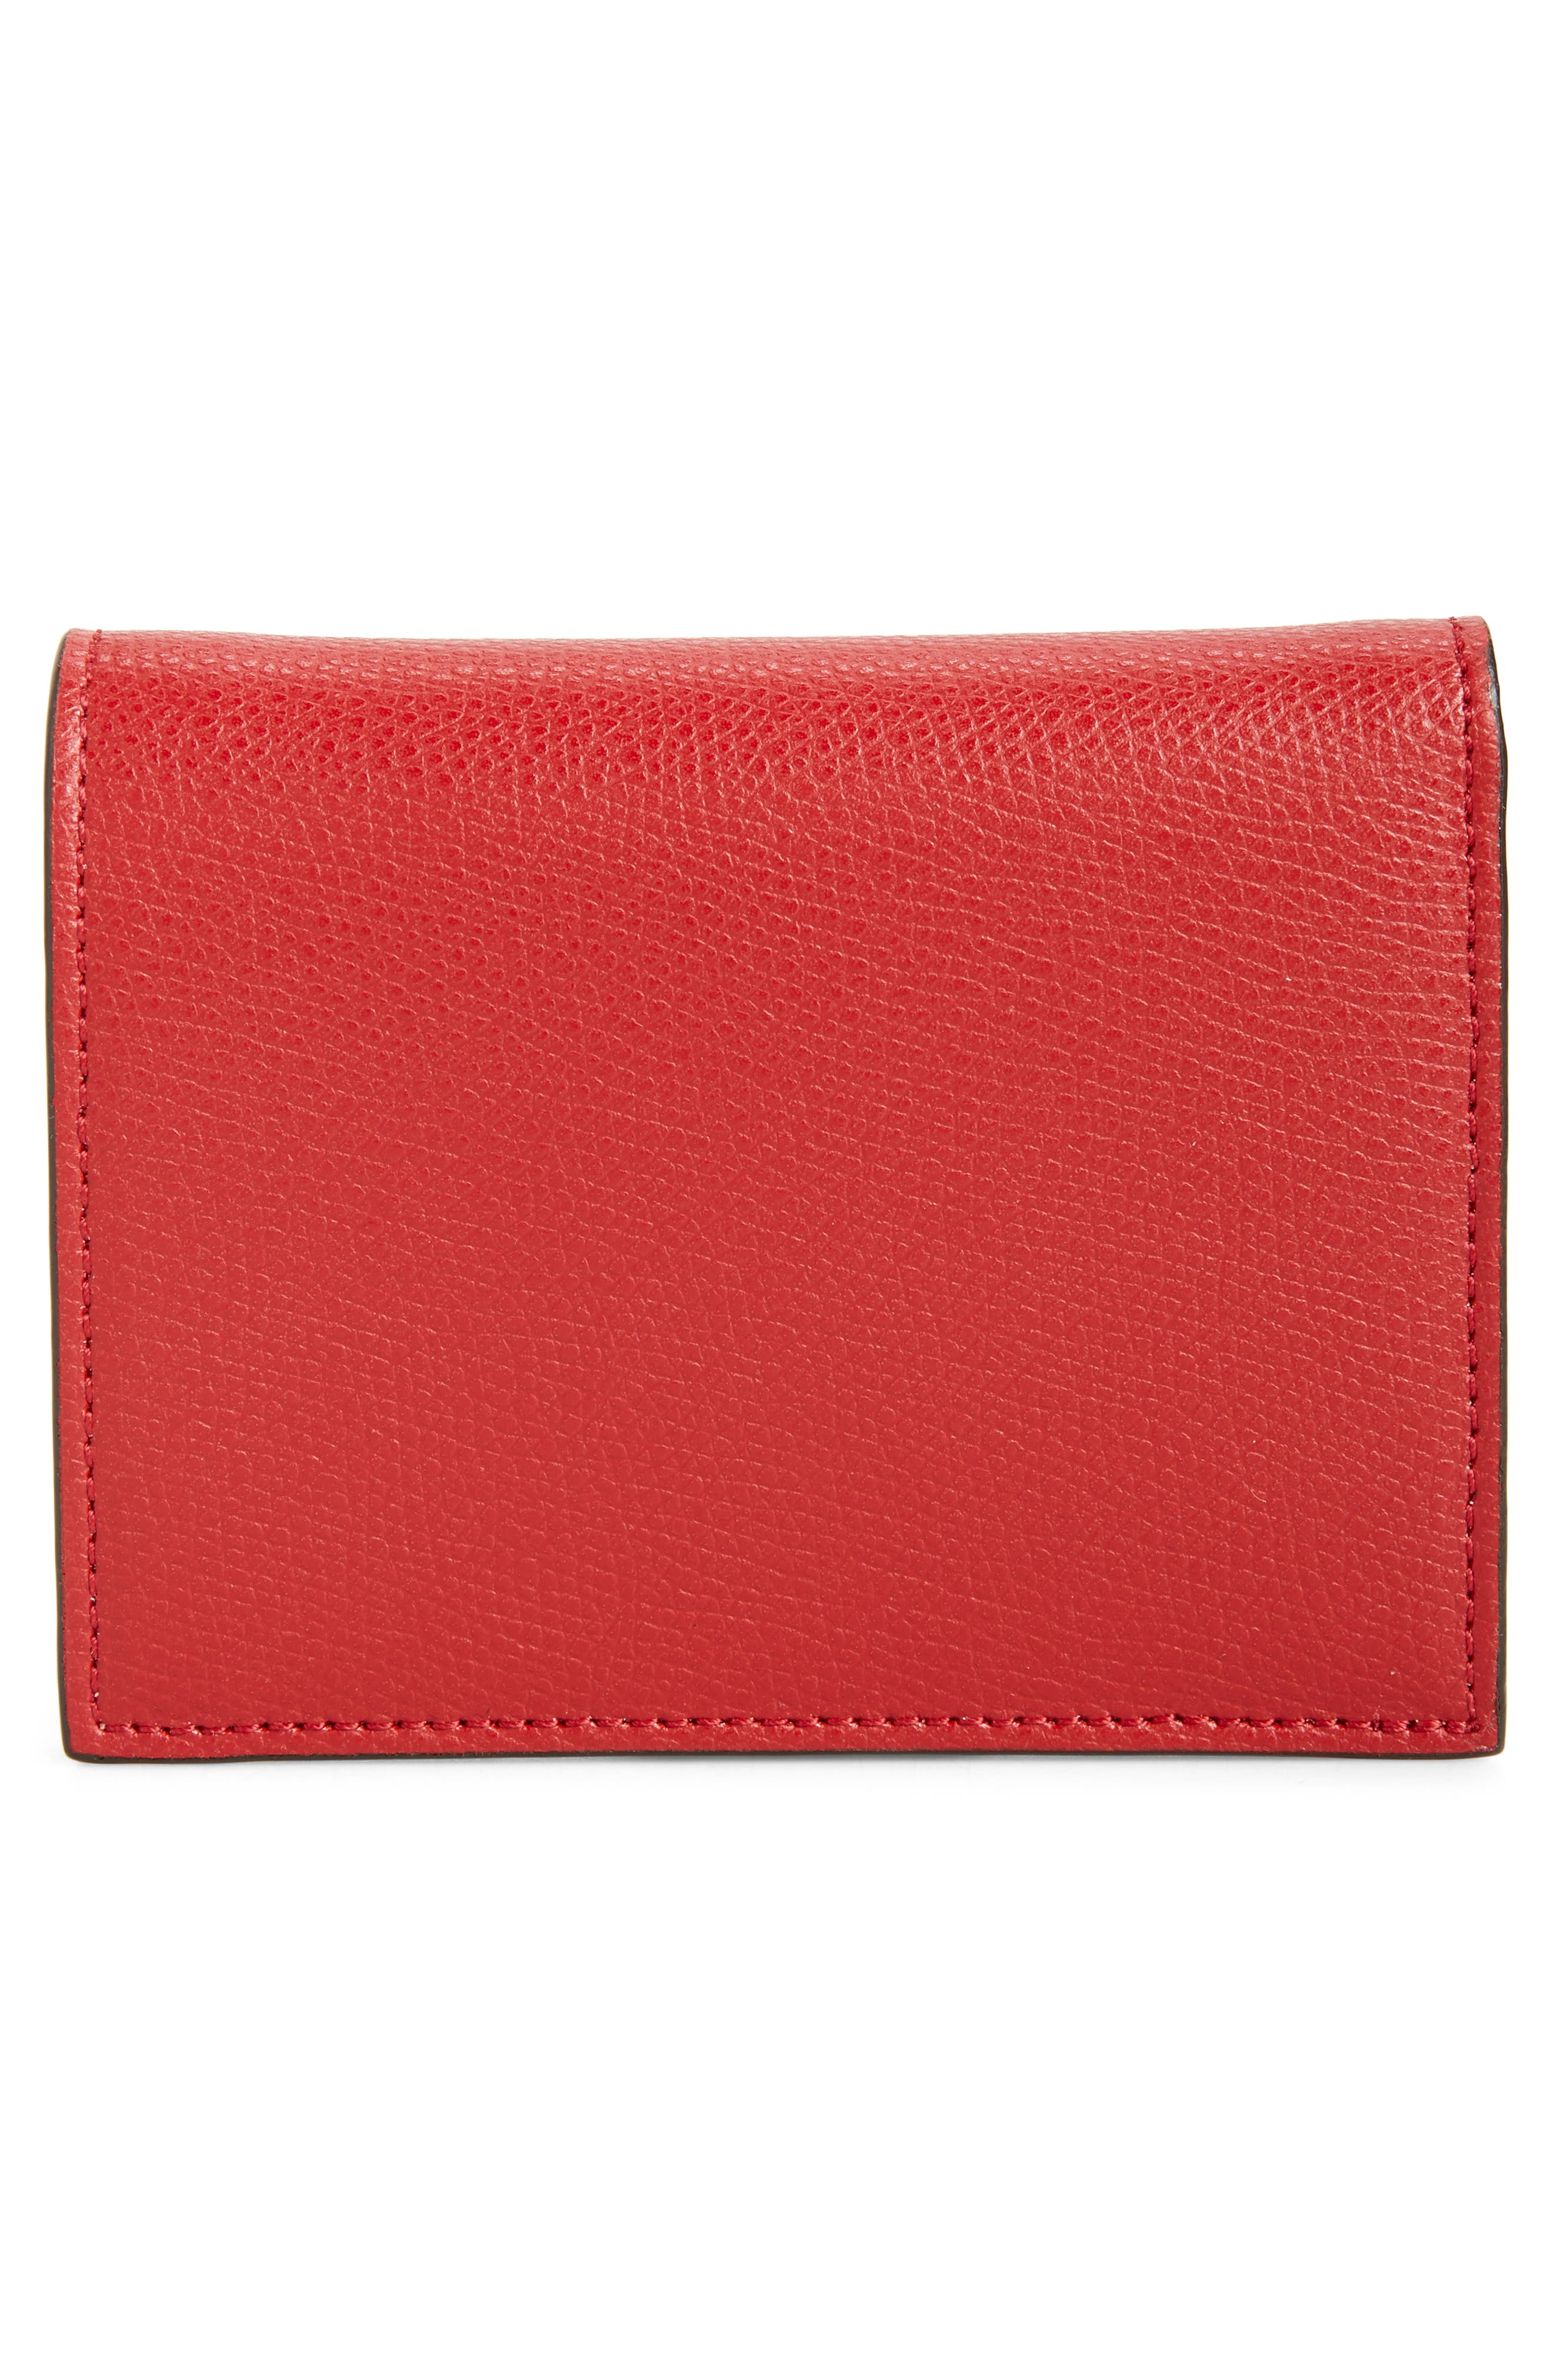 Logo Small Leather French Wallet,                             Alternate thumbnail 4, color,                             FRAGOLA/ ORO SOFT